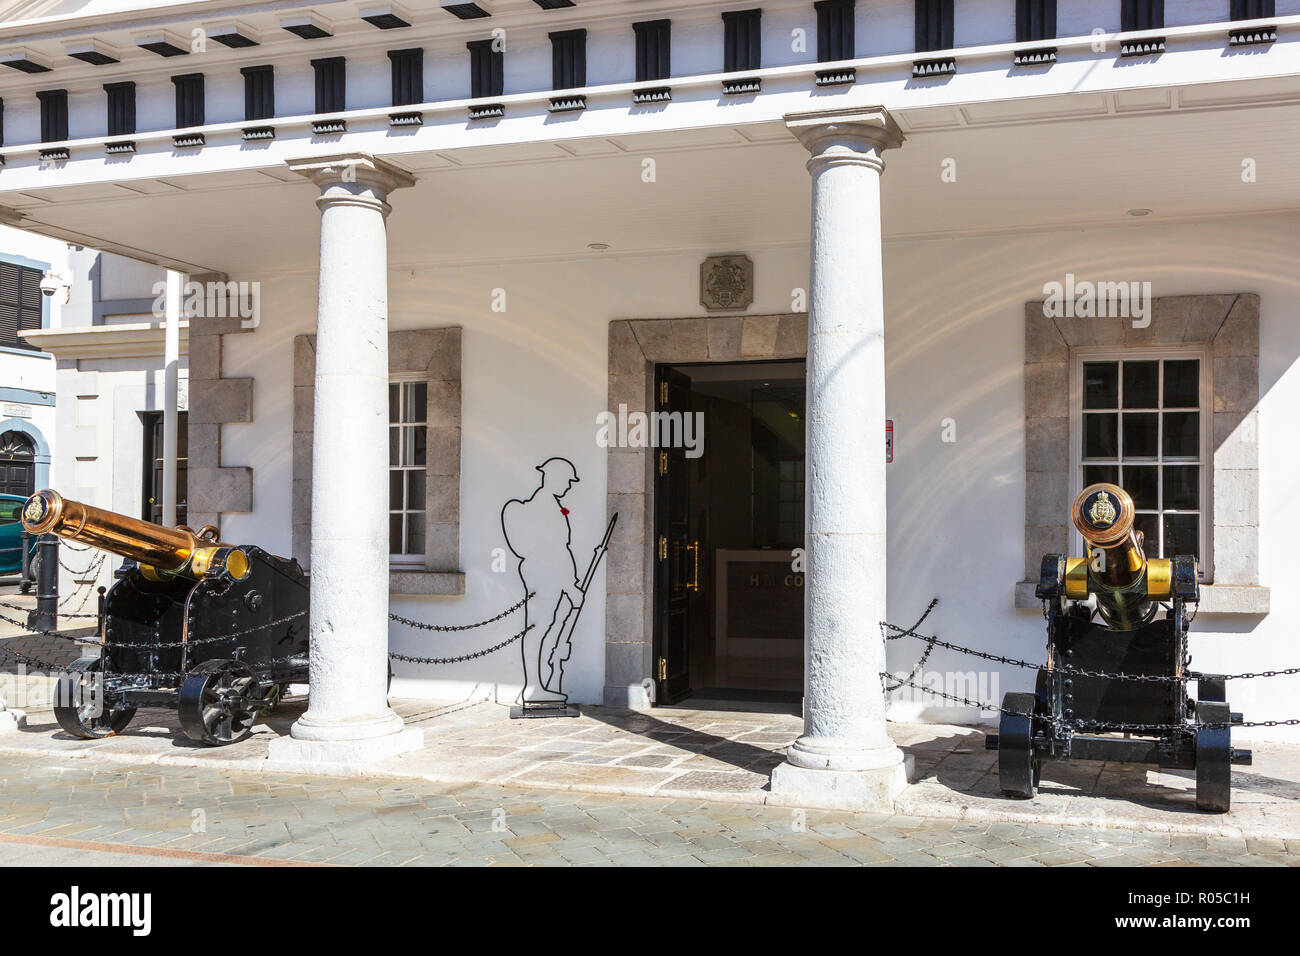 Gibraltar Government building on Main street, decorated with two cannons, Gibraltar, British Overseas Territory - Stock Image